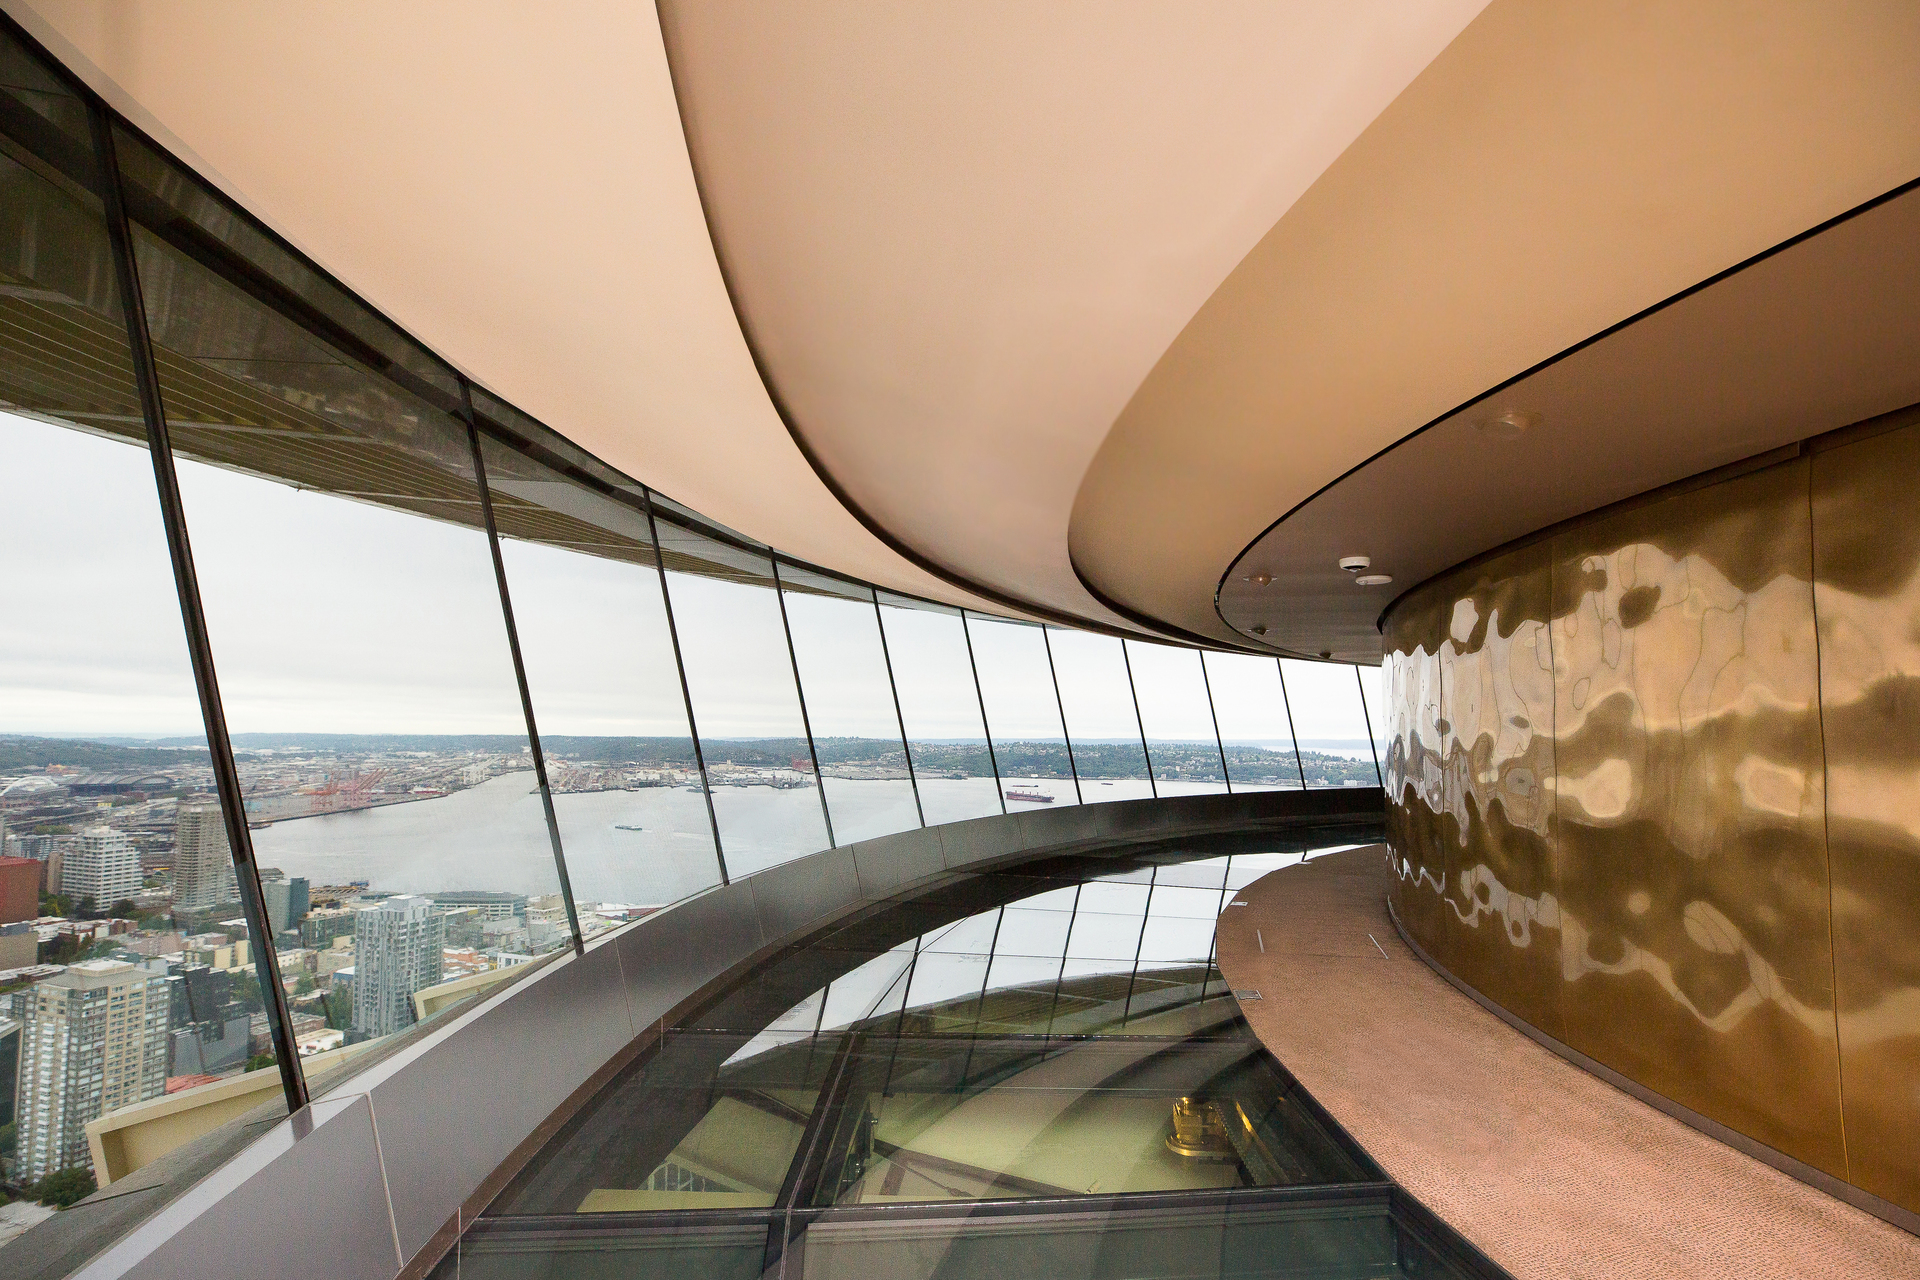 Even Better Silk, by Fellert, provides seamless acoustical concrete like look. Even Better Silk mimics the color and look of concrete but completely absorbs sound.